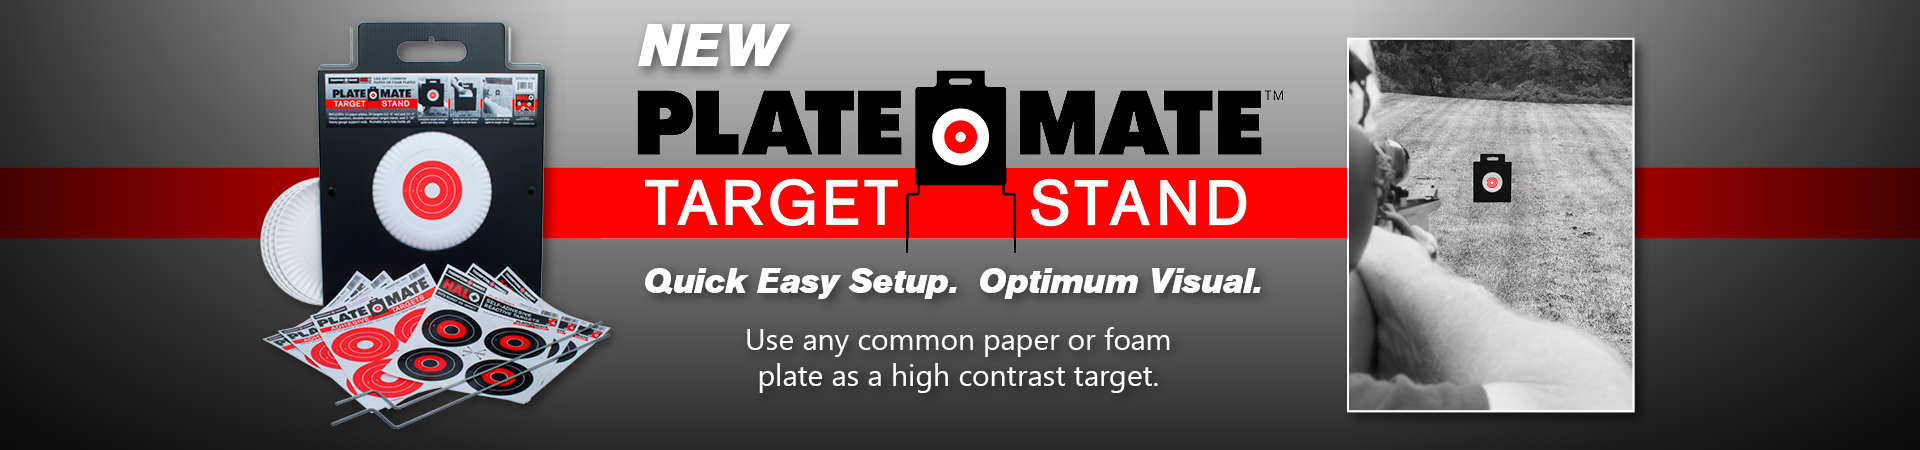 Plate-Mate Outdoor Target Shooting Stand by Thompson